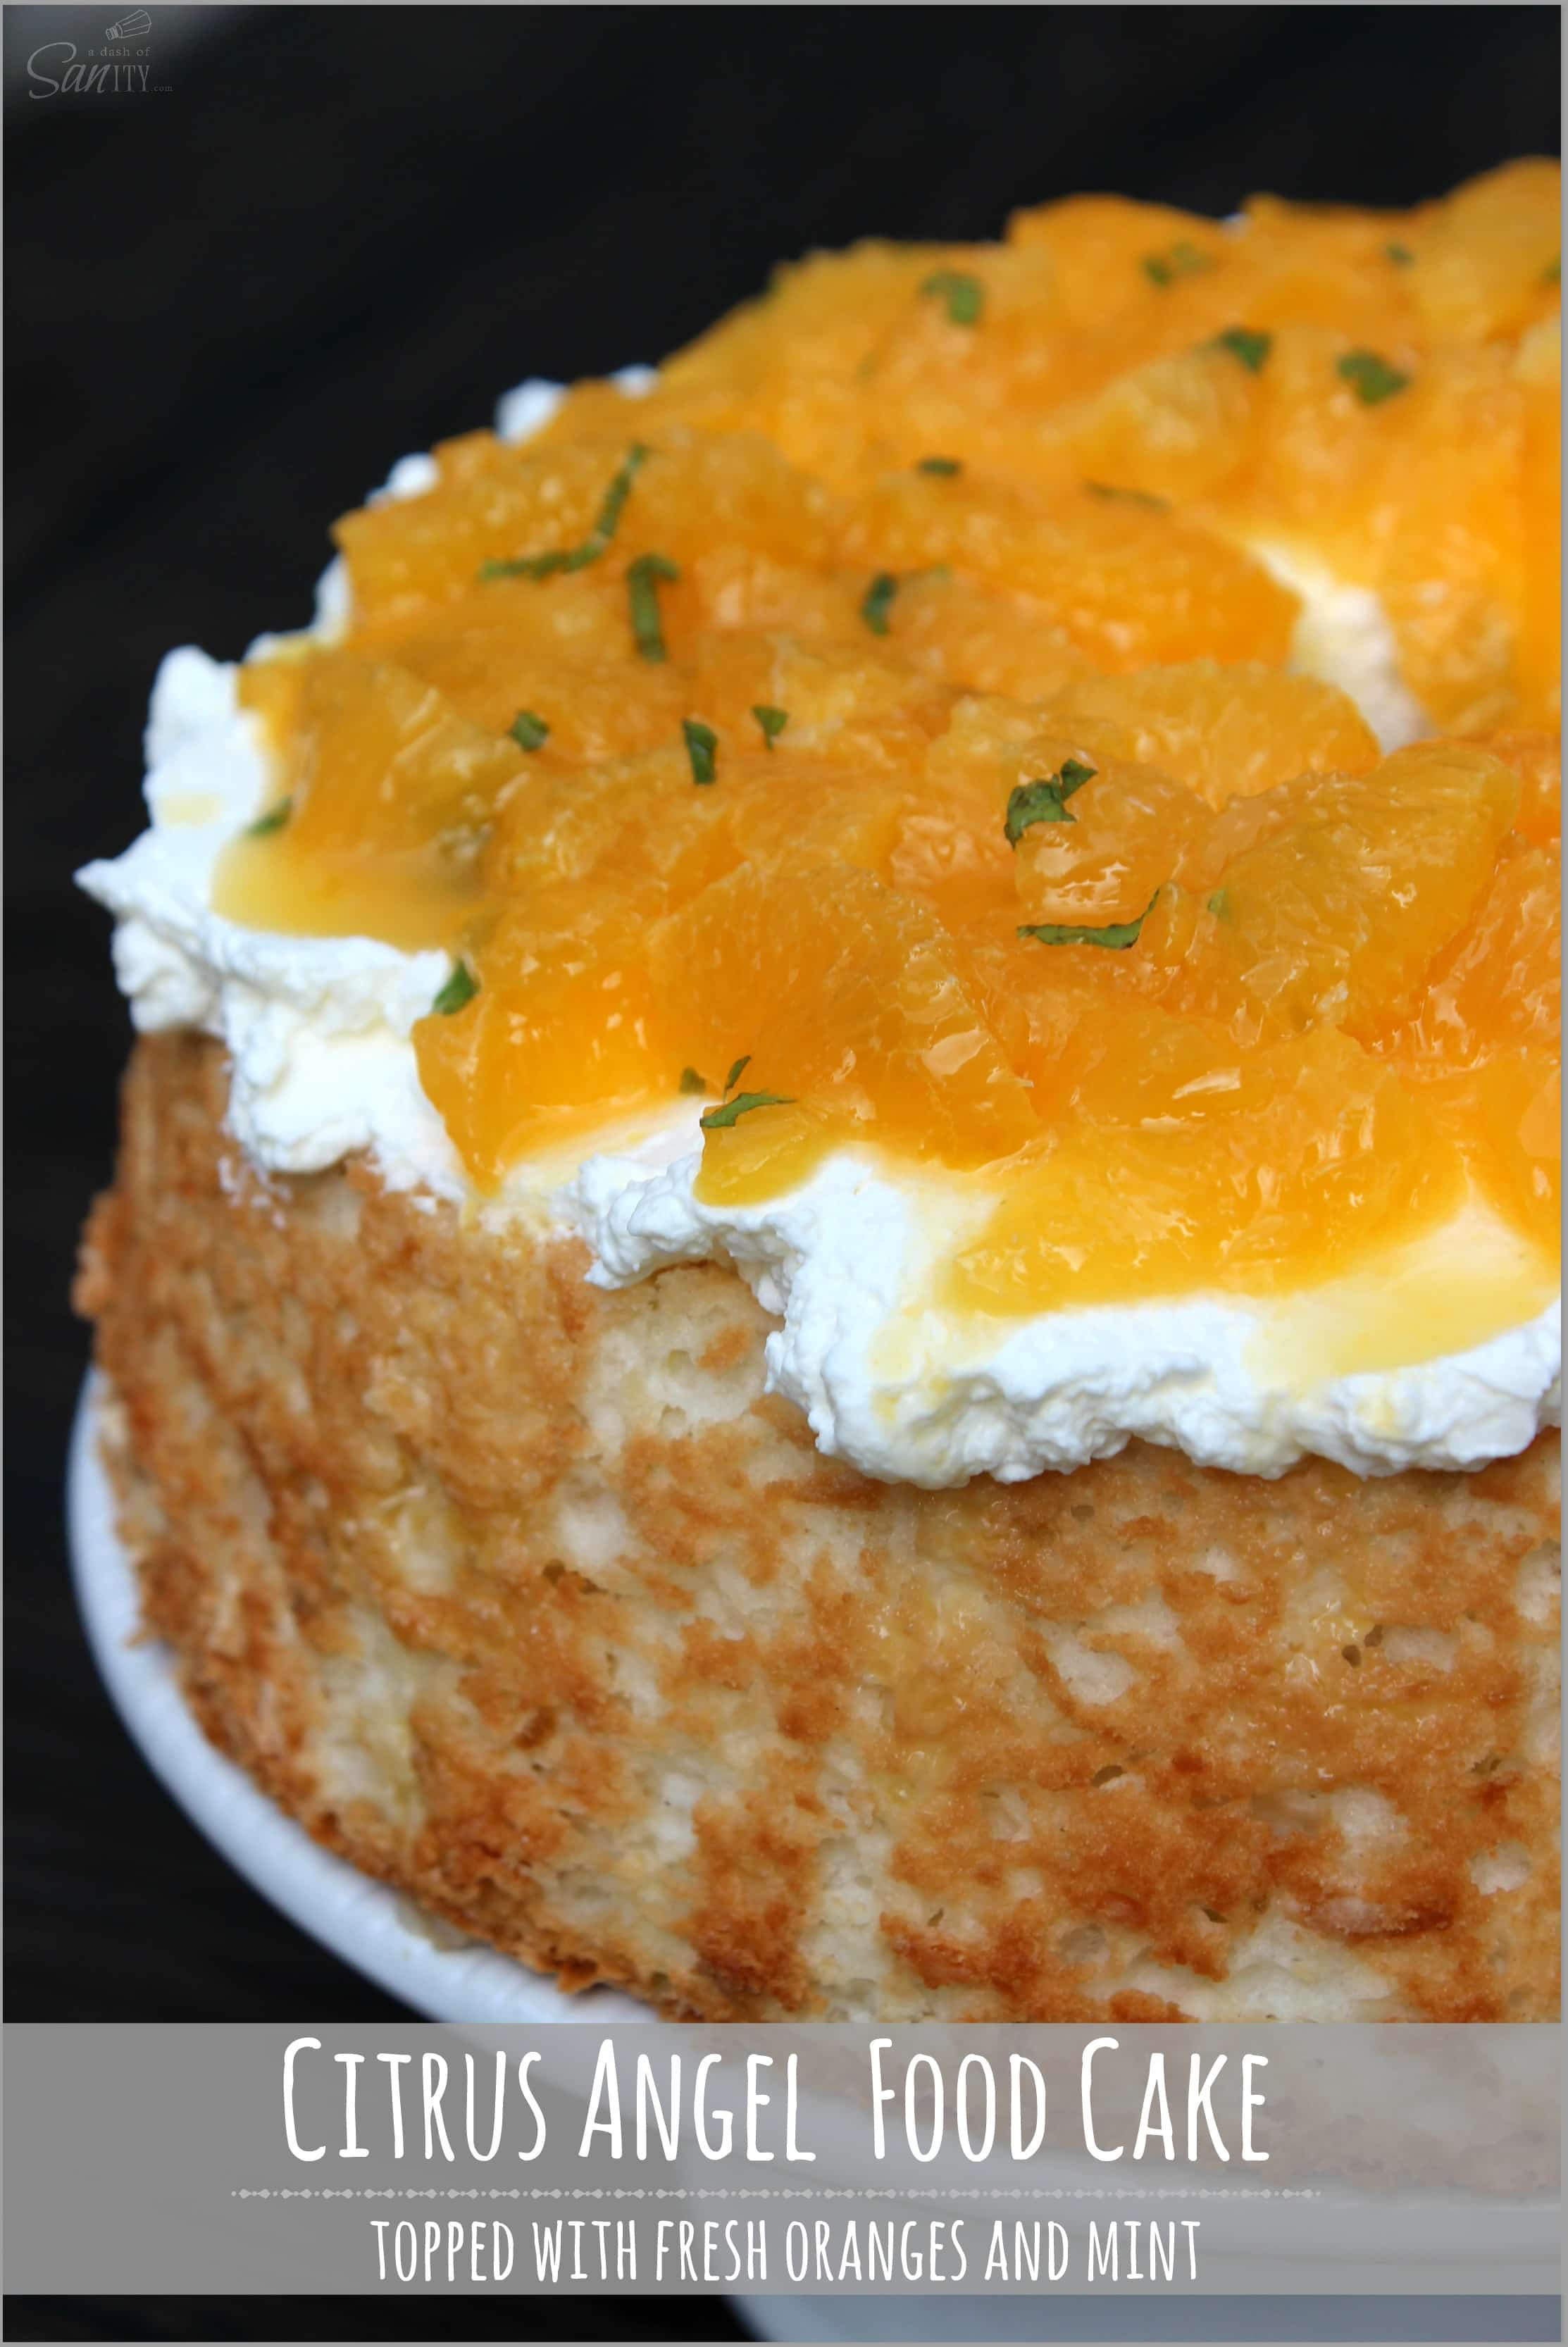 Citrus Angel Food Cake with Orange Mint Topping